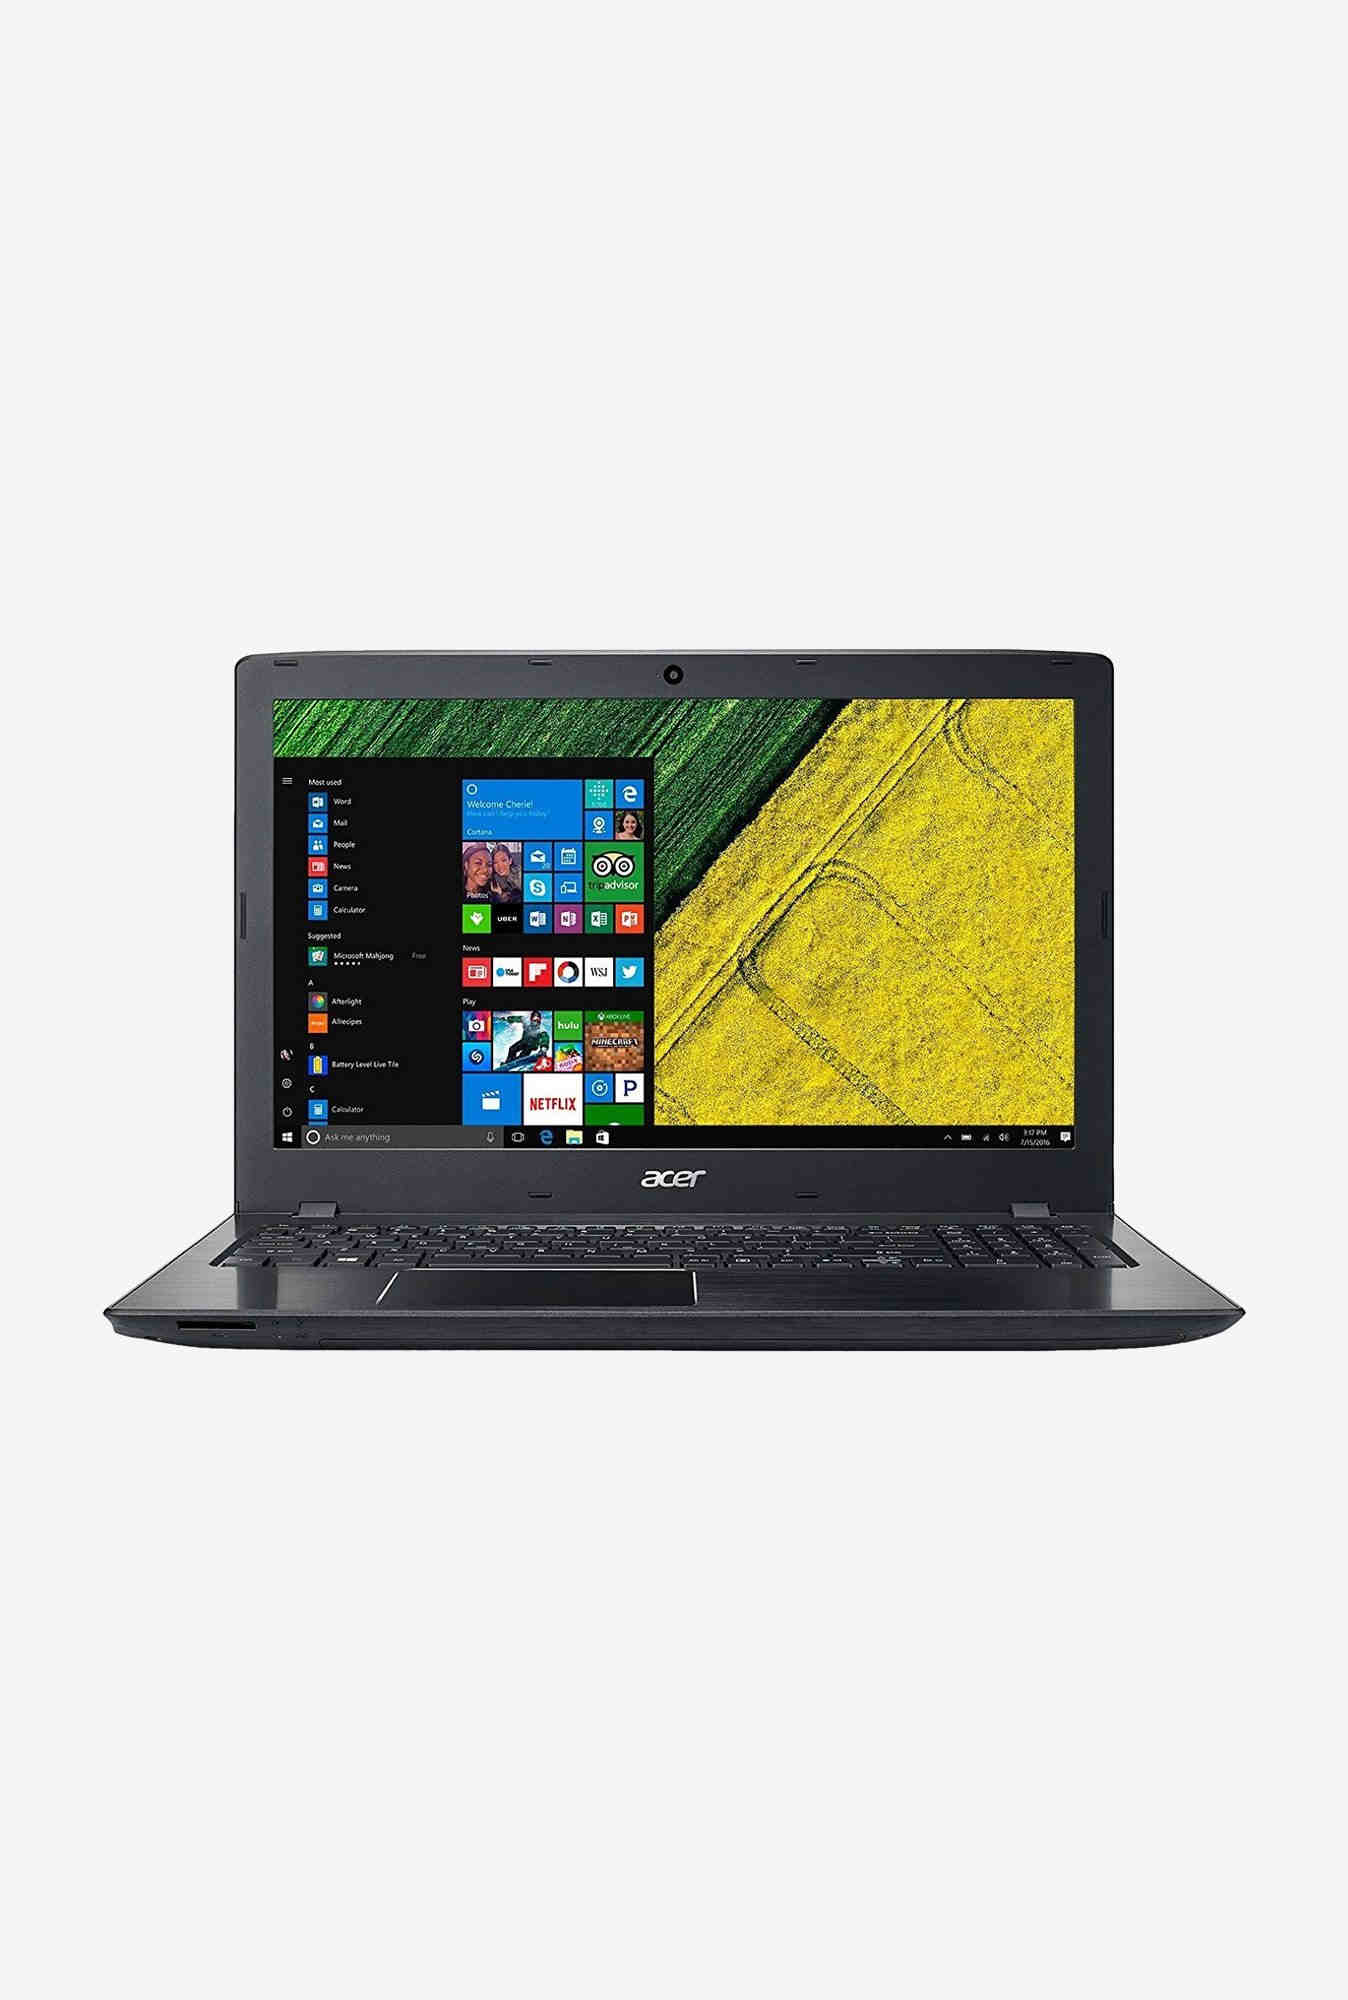 Acer Aspire ES1-523 (NX.GKYSI.002) AMD APU Quad Core 4 GB 1 TB Linux or Ubuntu 15 Inch - 15.9 Inch Laptop